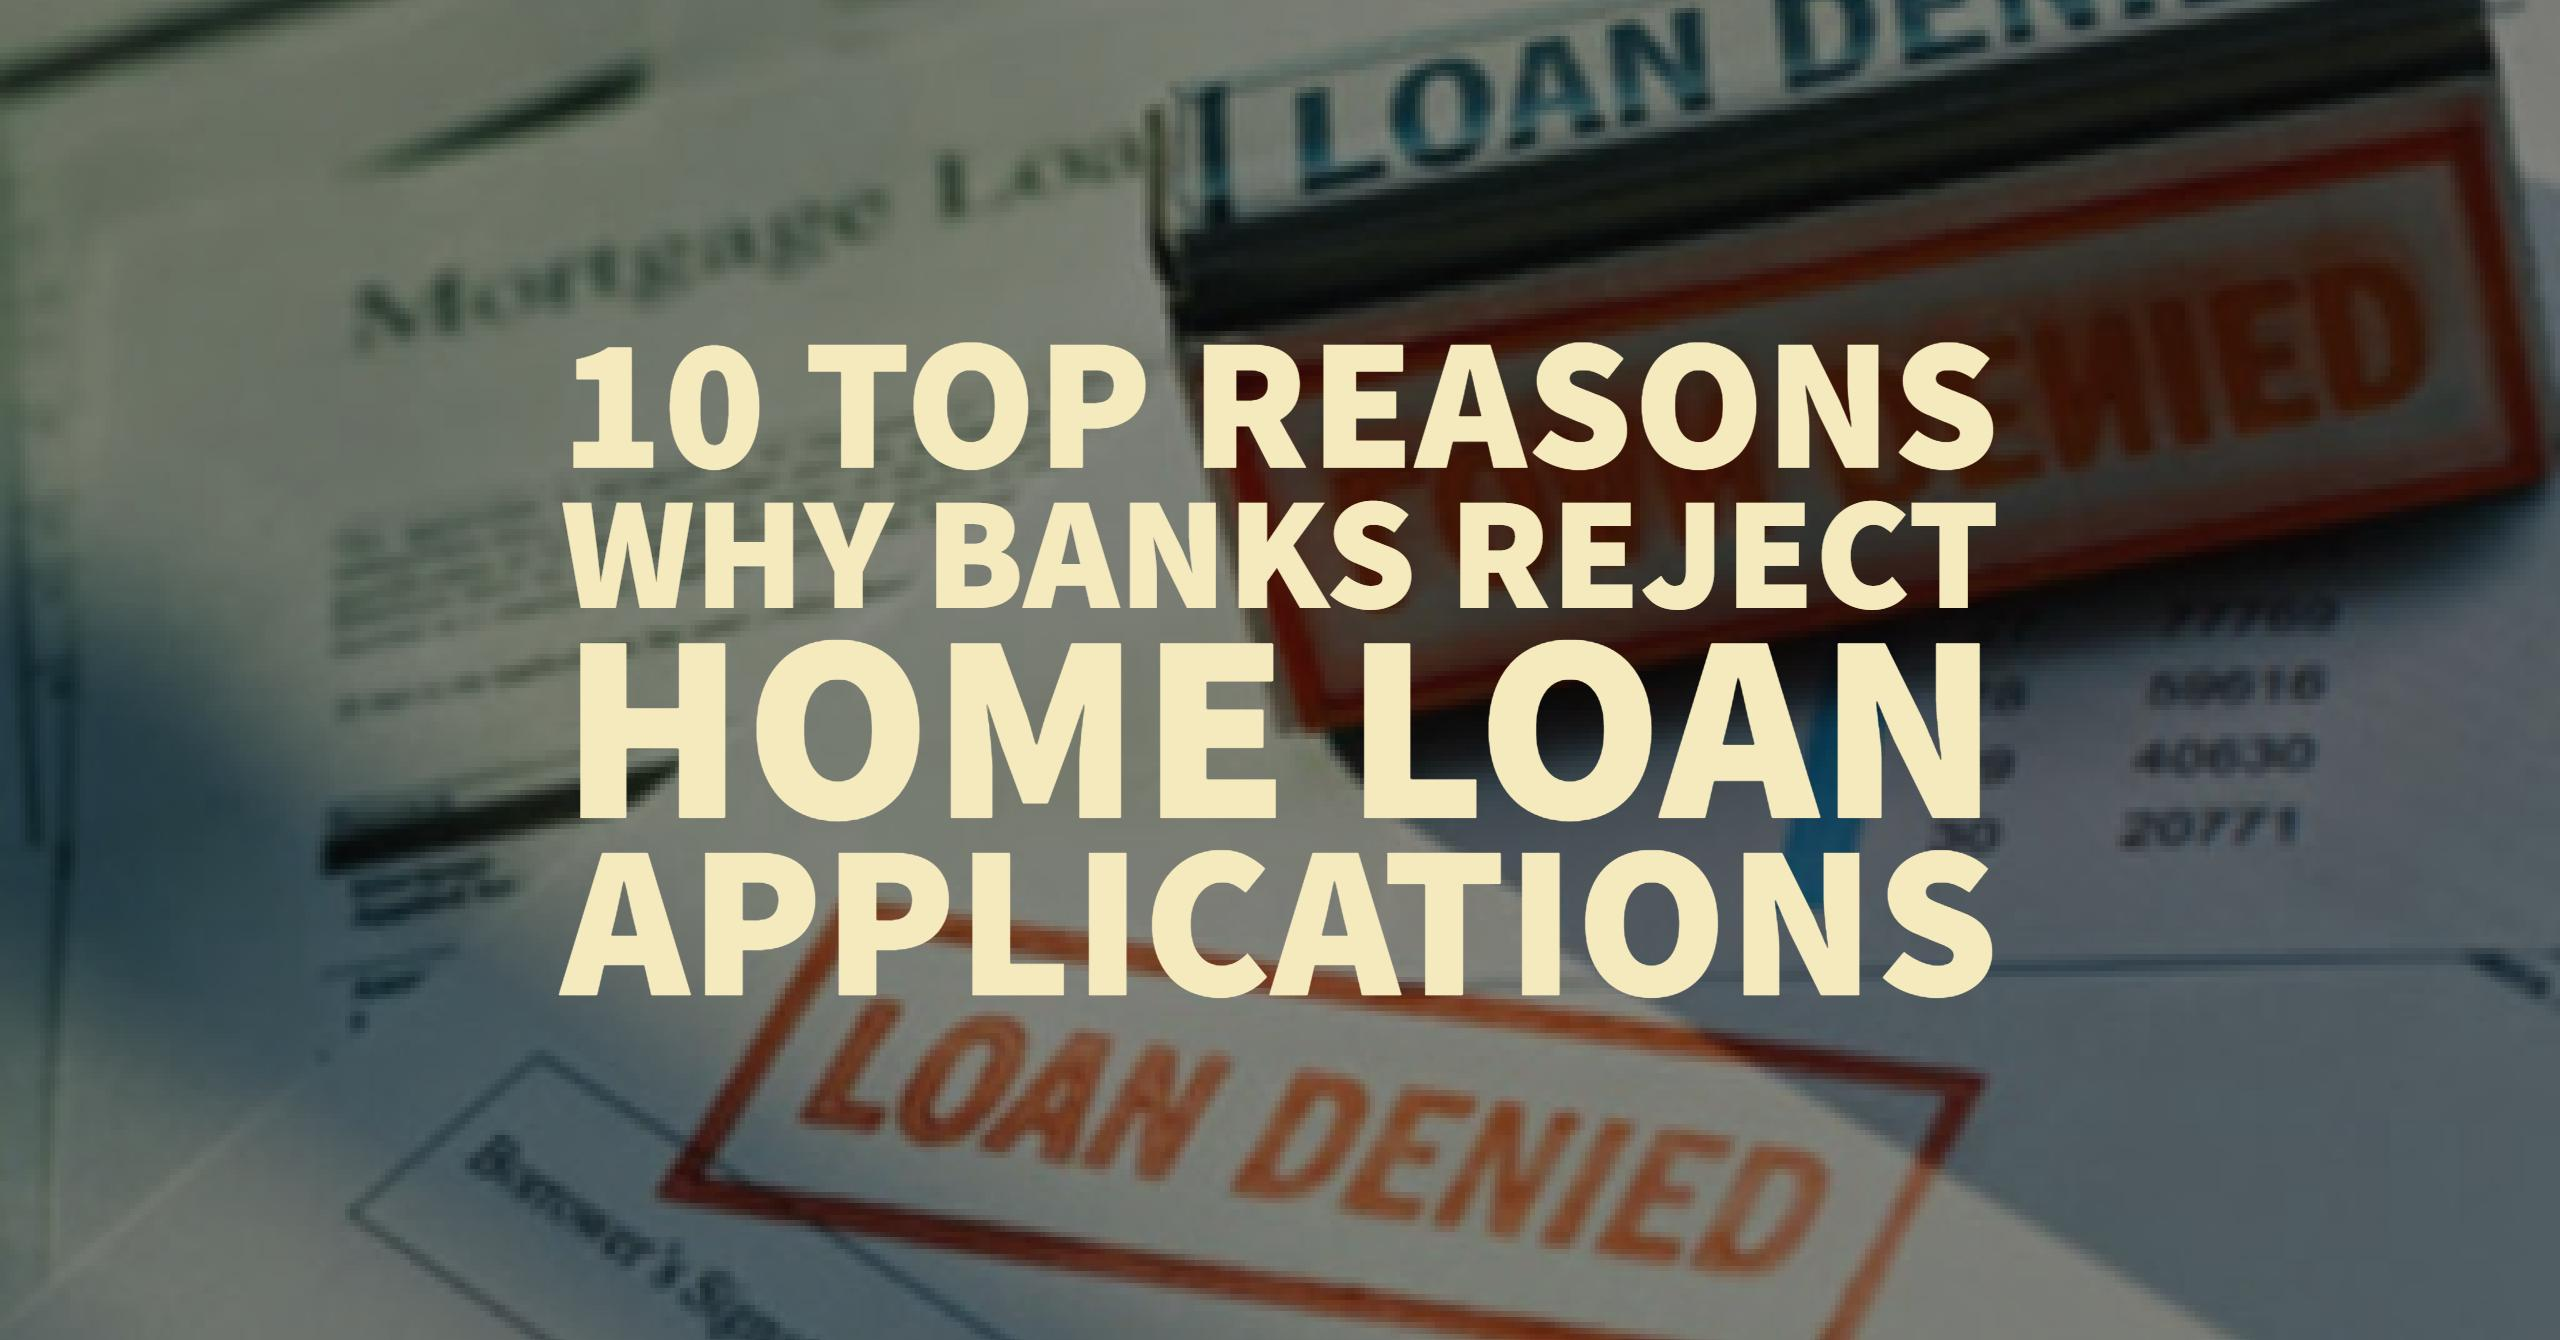 10-Top-Reasons-Why-Banks-Reject-Home-Loan-Applications